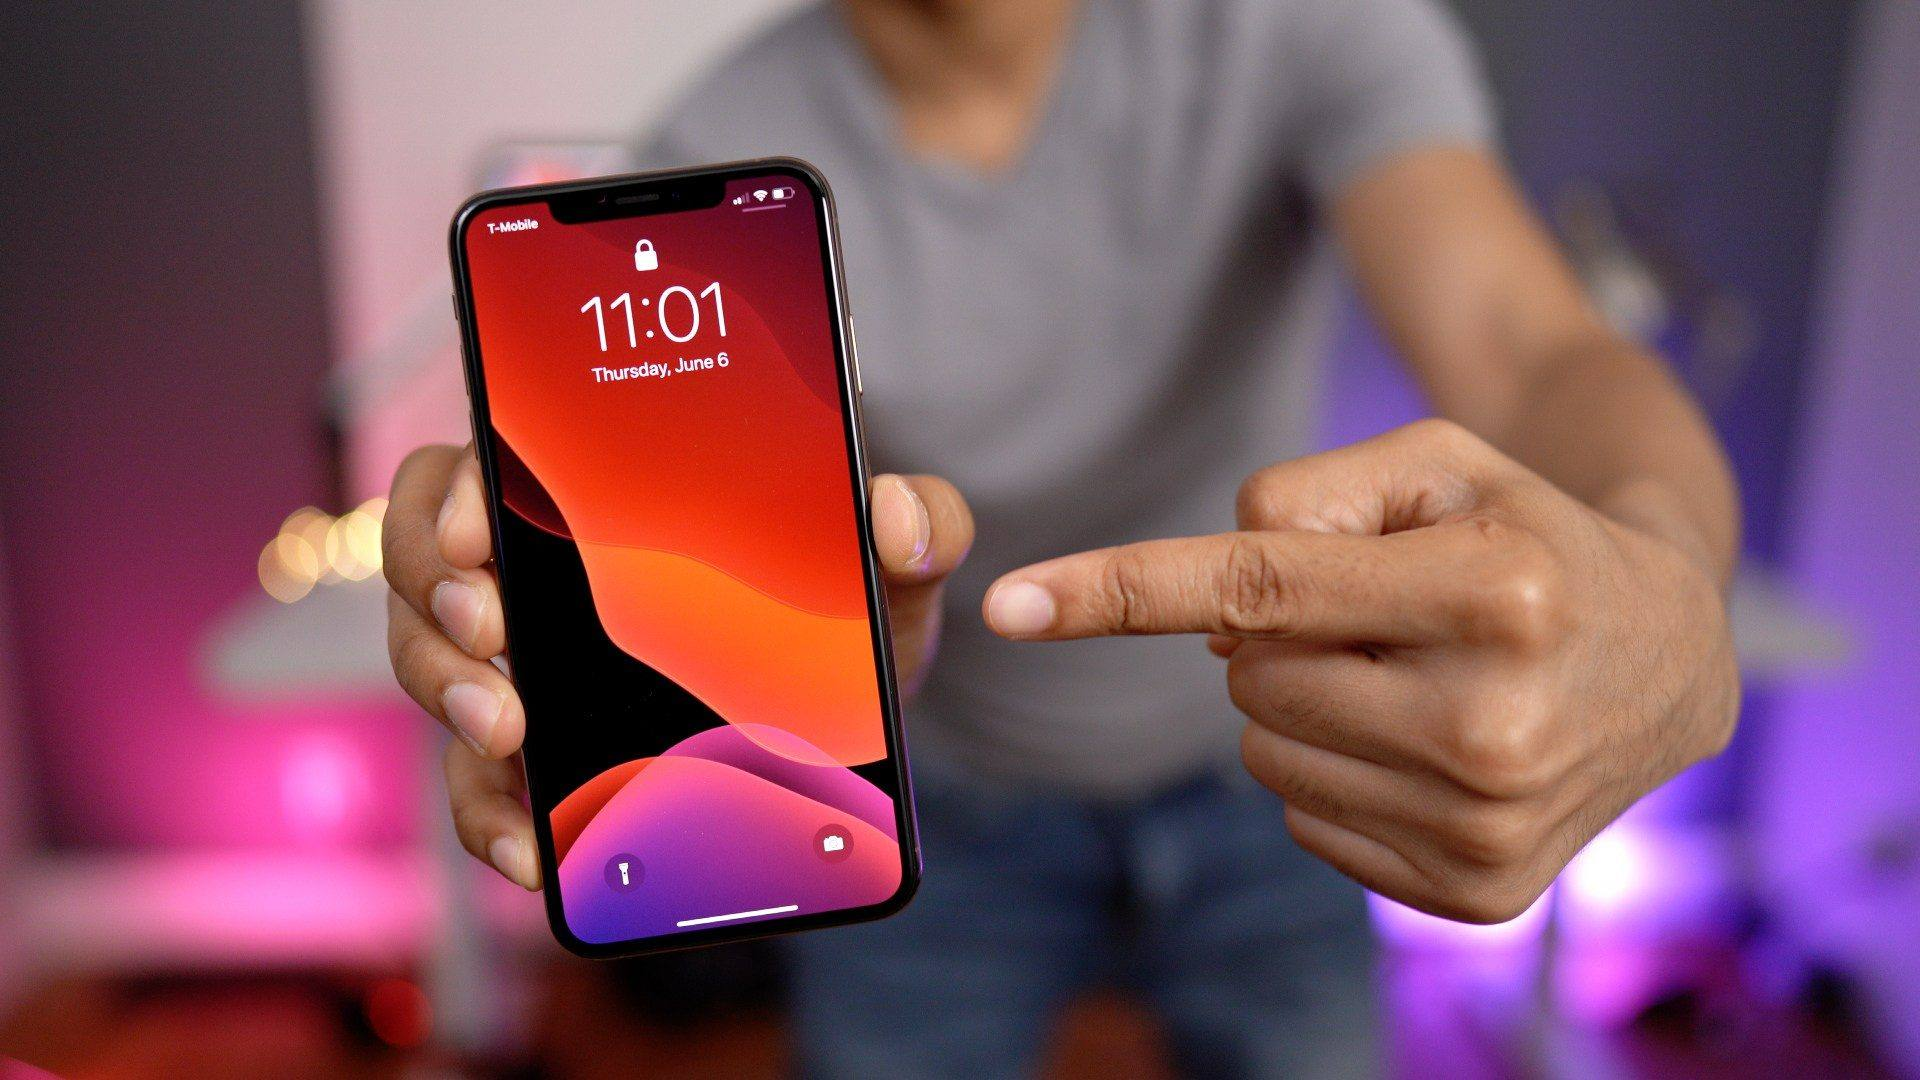 iOS-13-changes-and-features-200-video